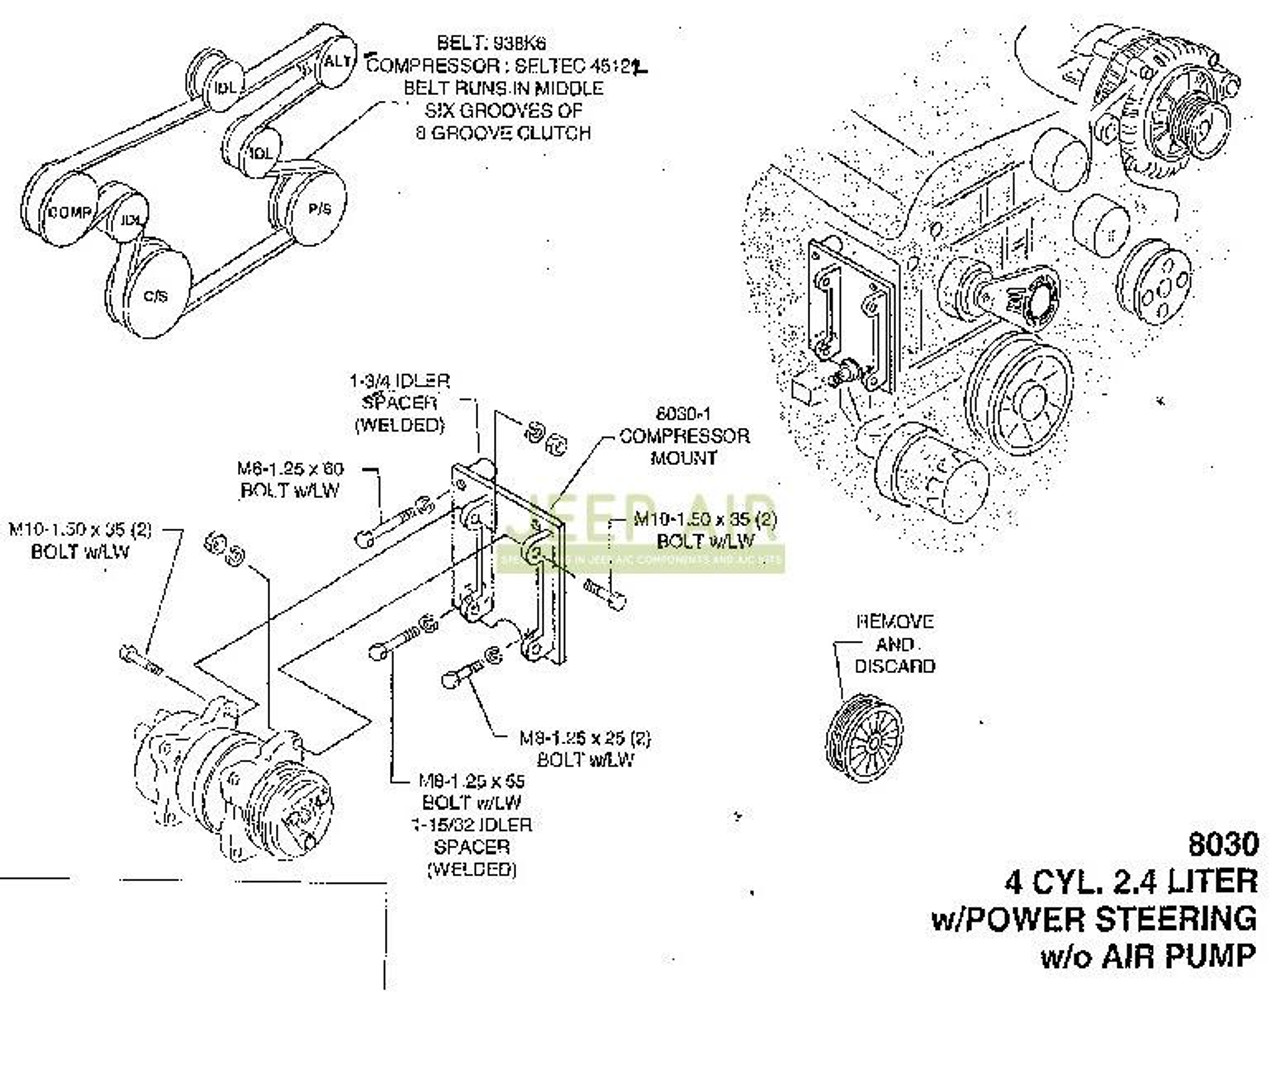 hight resolution of 2003 jeep wrangler engine diagram schema wiring diagram 2000 jeep wrangler engine diagram